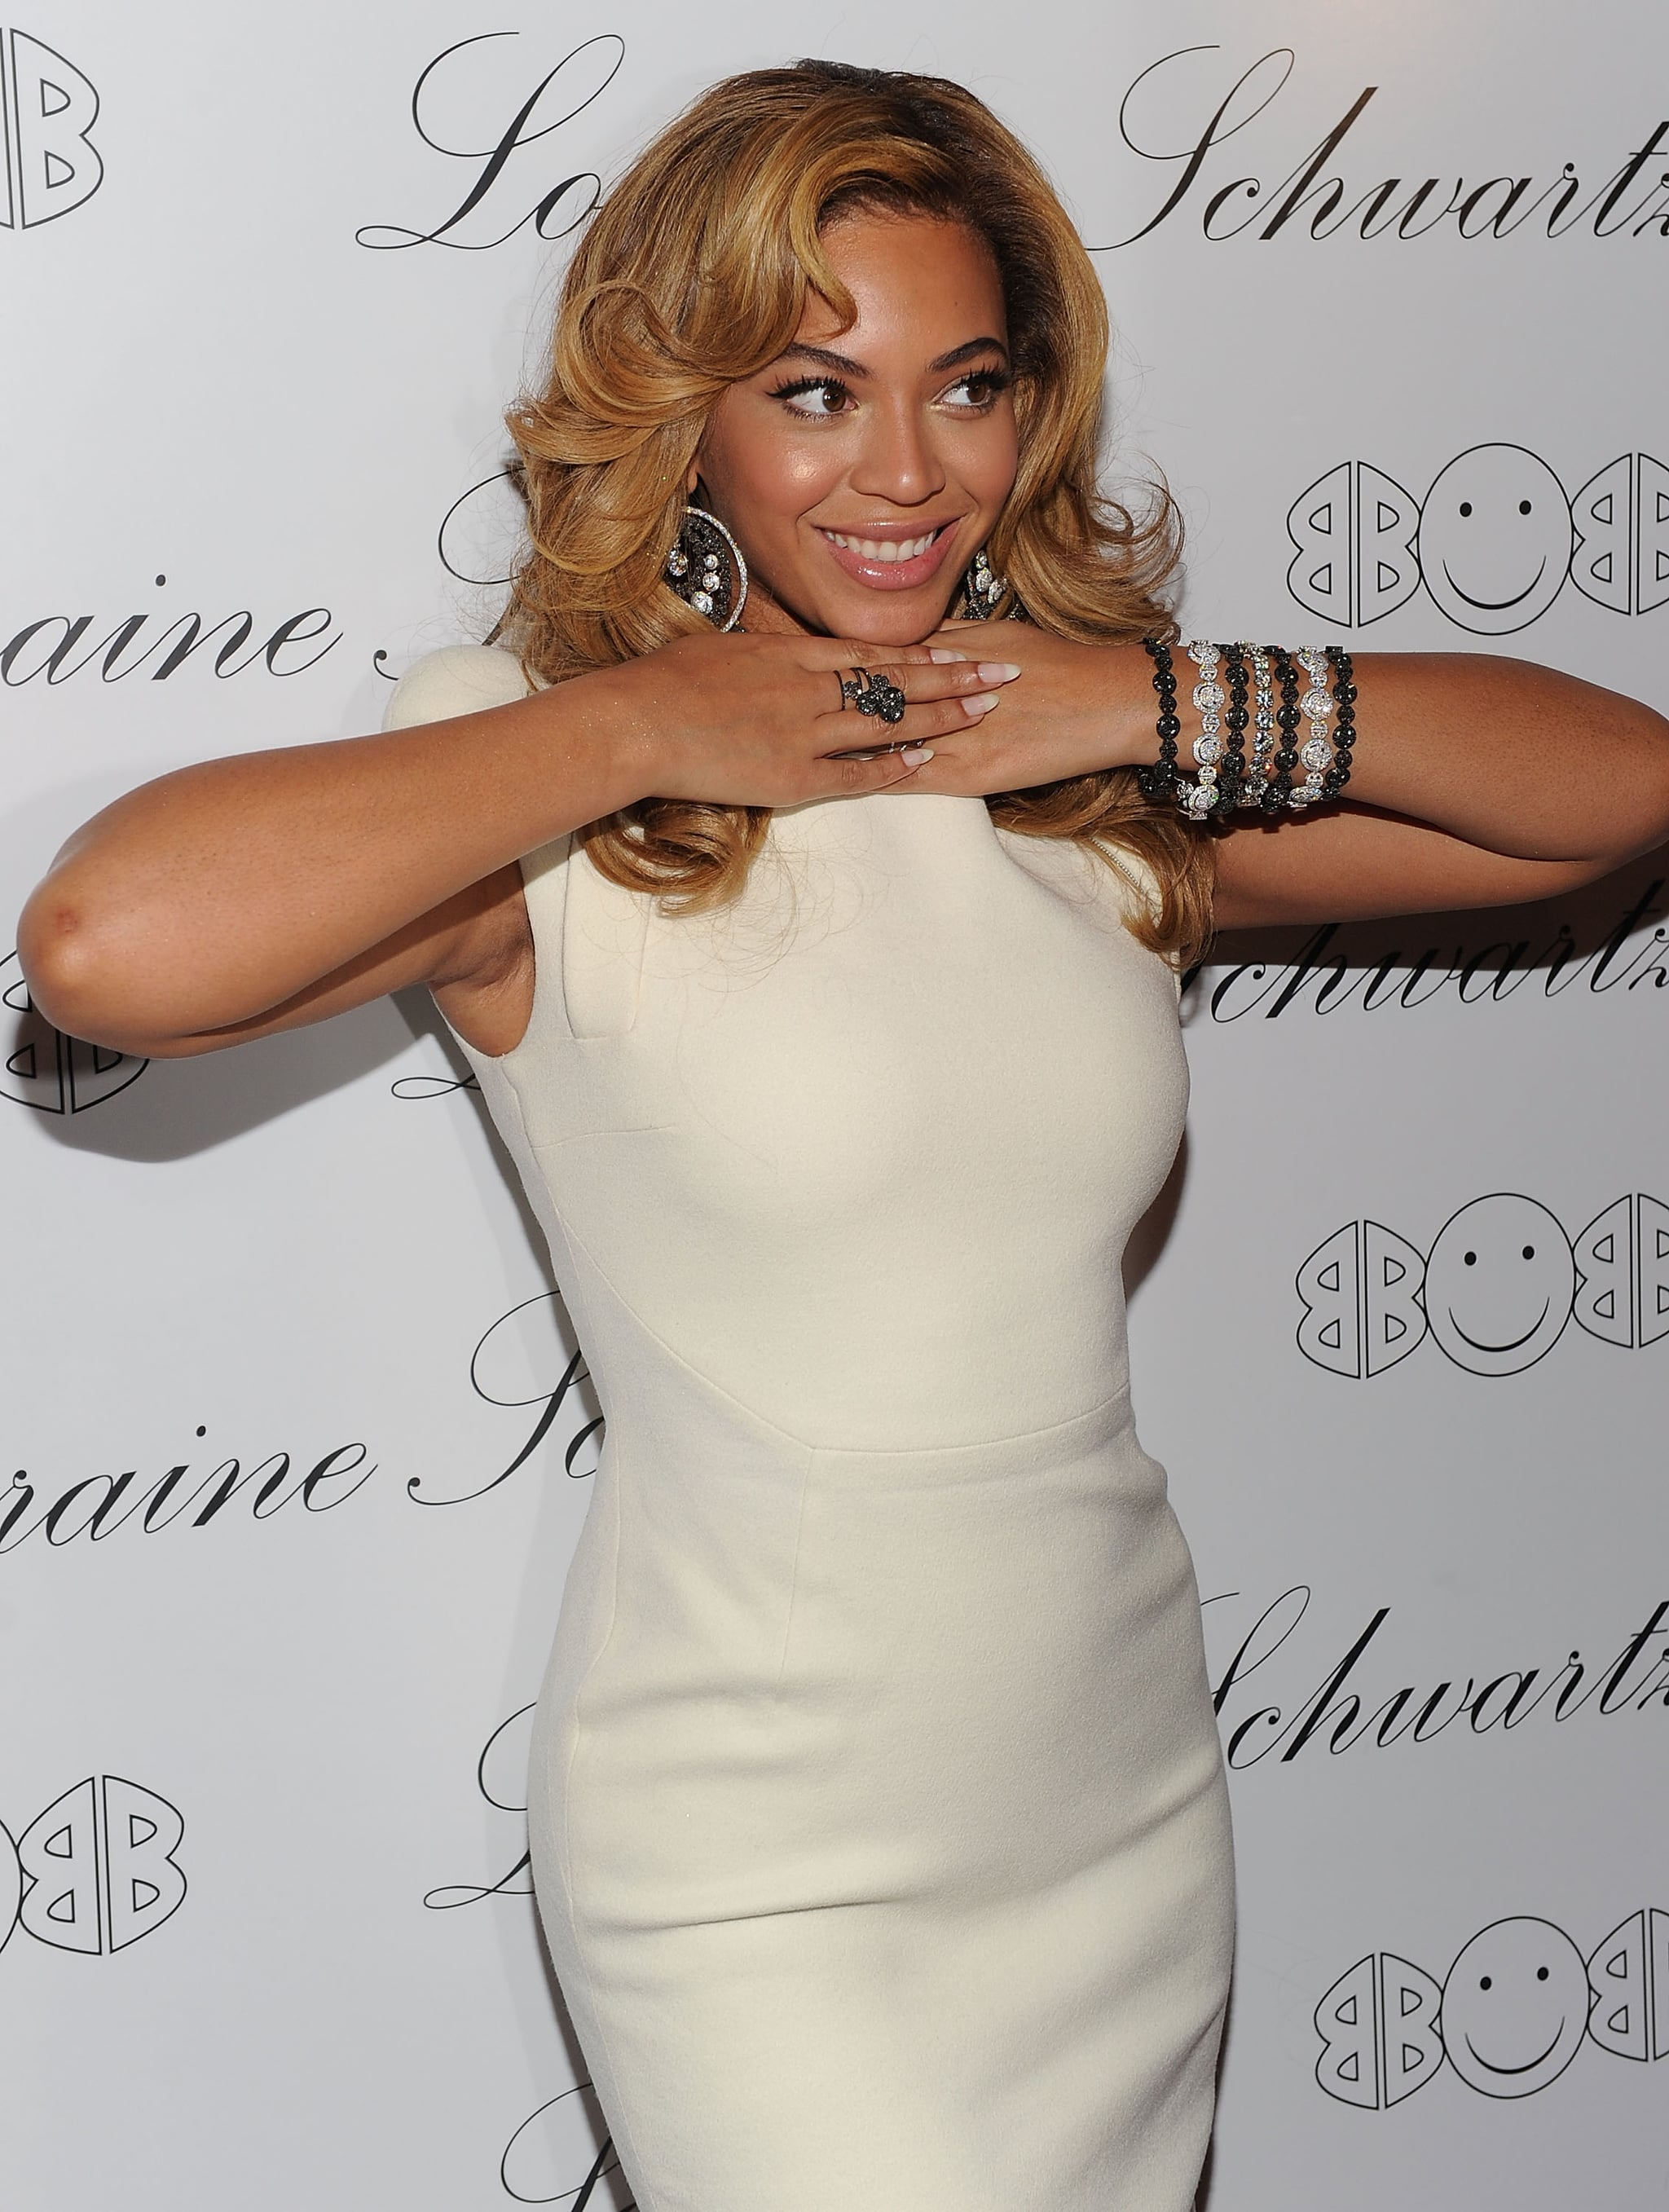 Pictures of Beyonce Knowles and Blake Lively at Lorraine Schwartzs